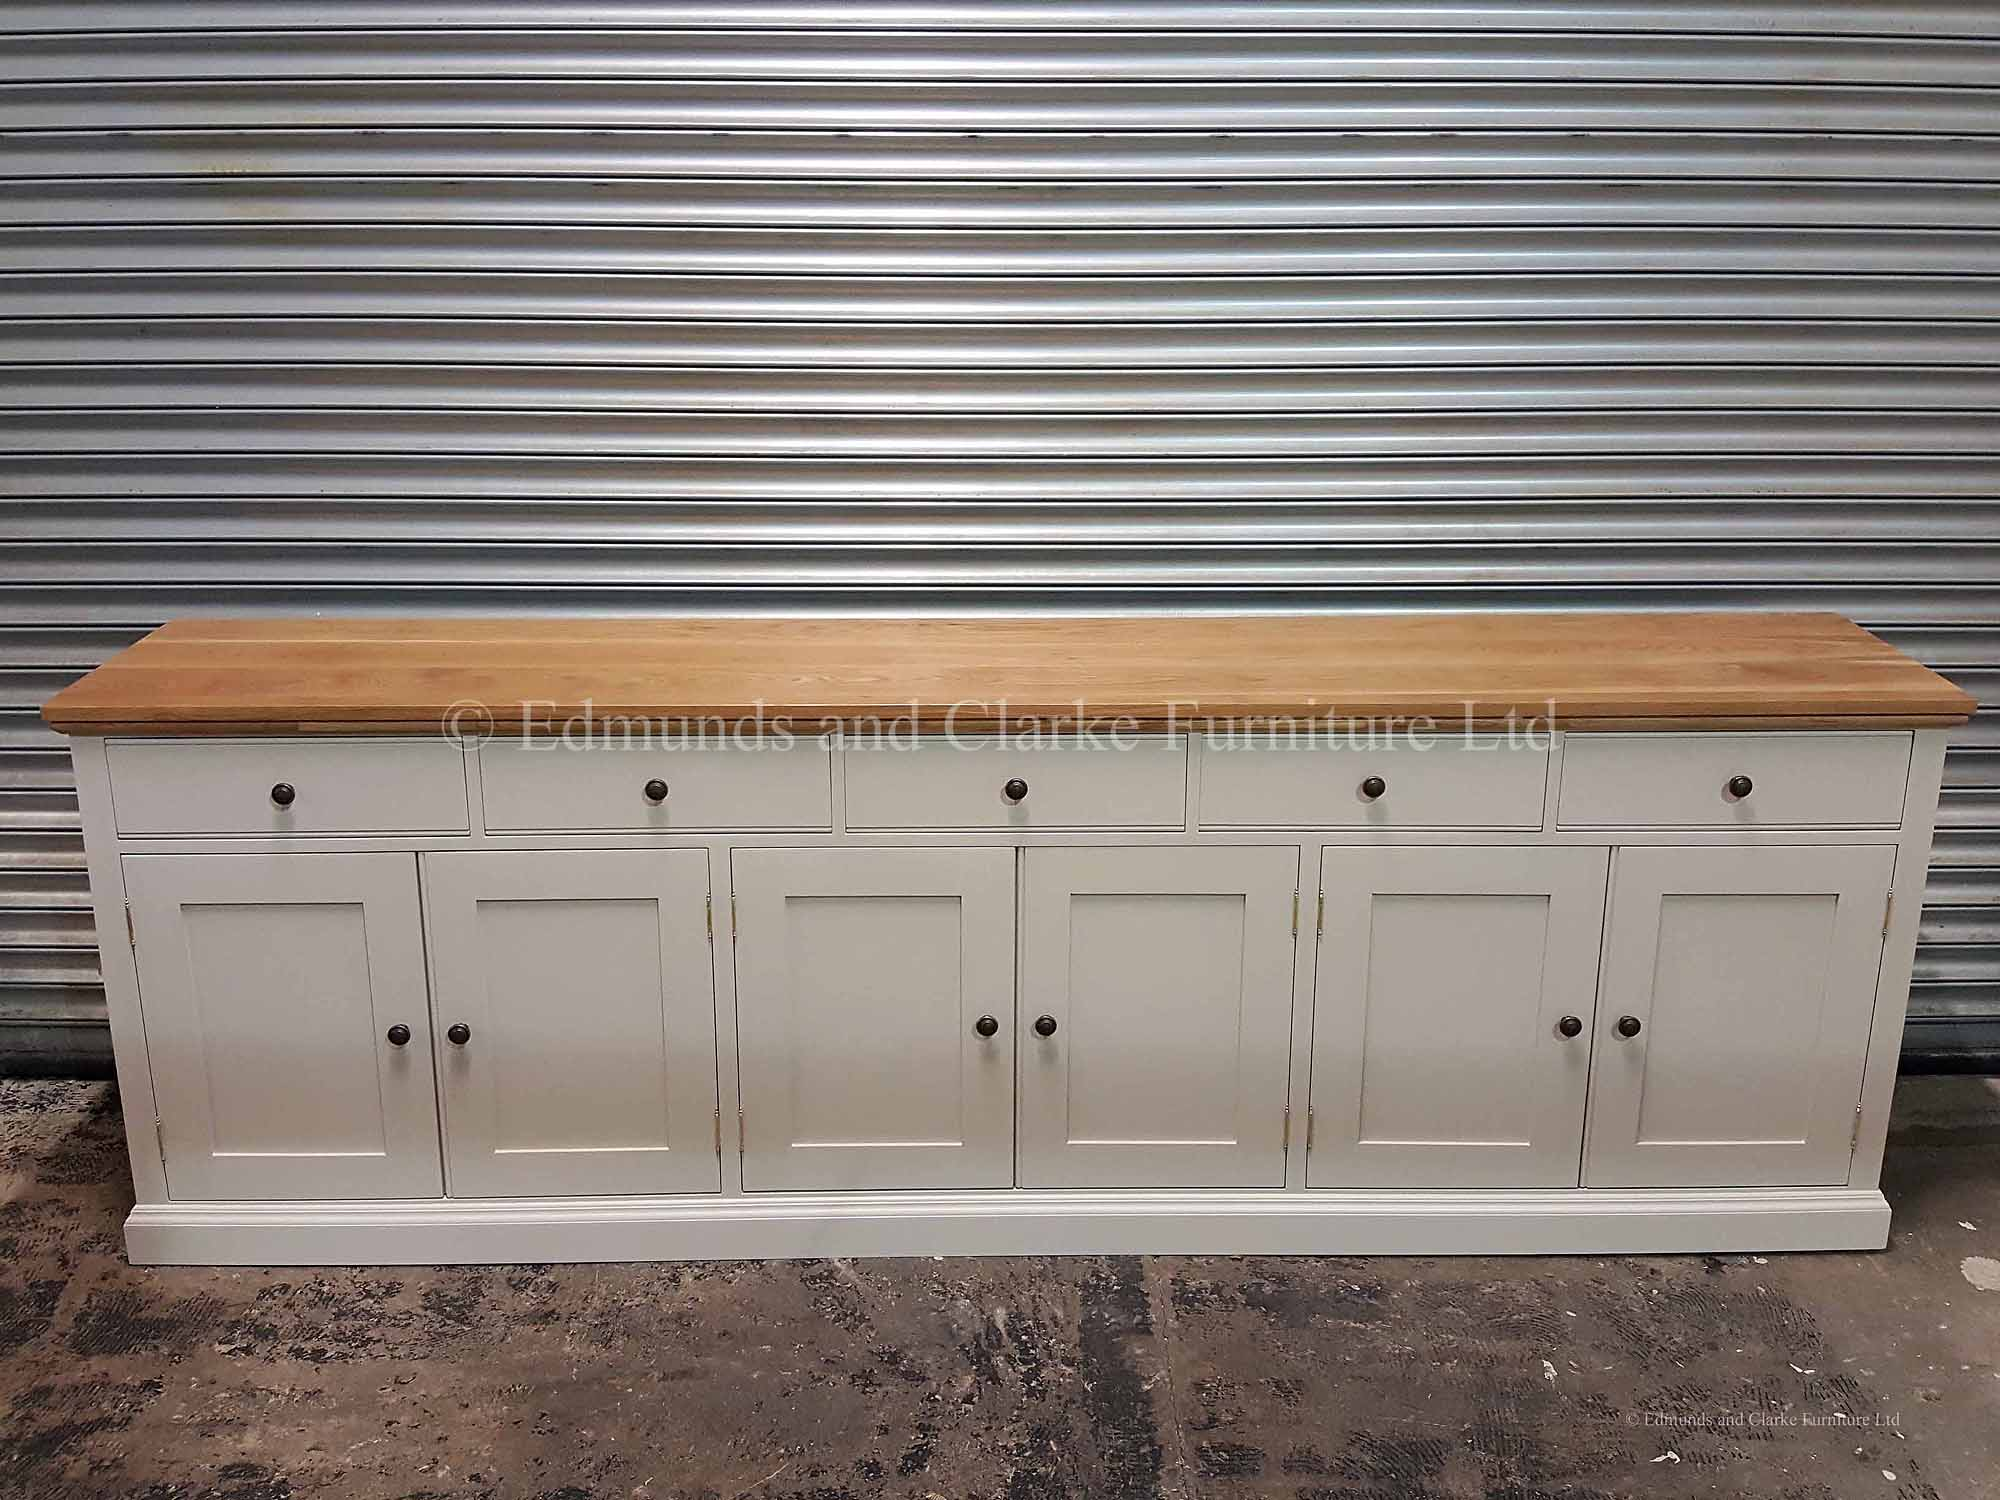 Edmunds Painted 9ft Sideboard | Edmunds & Clarke Furniture Ltd